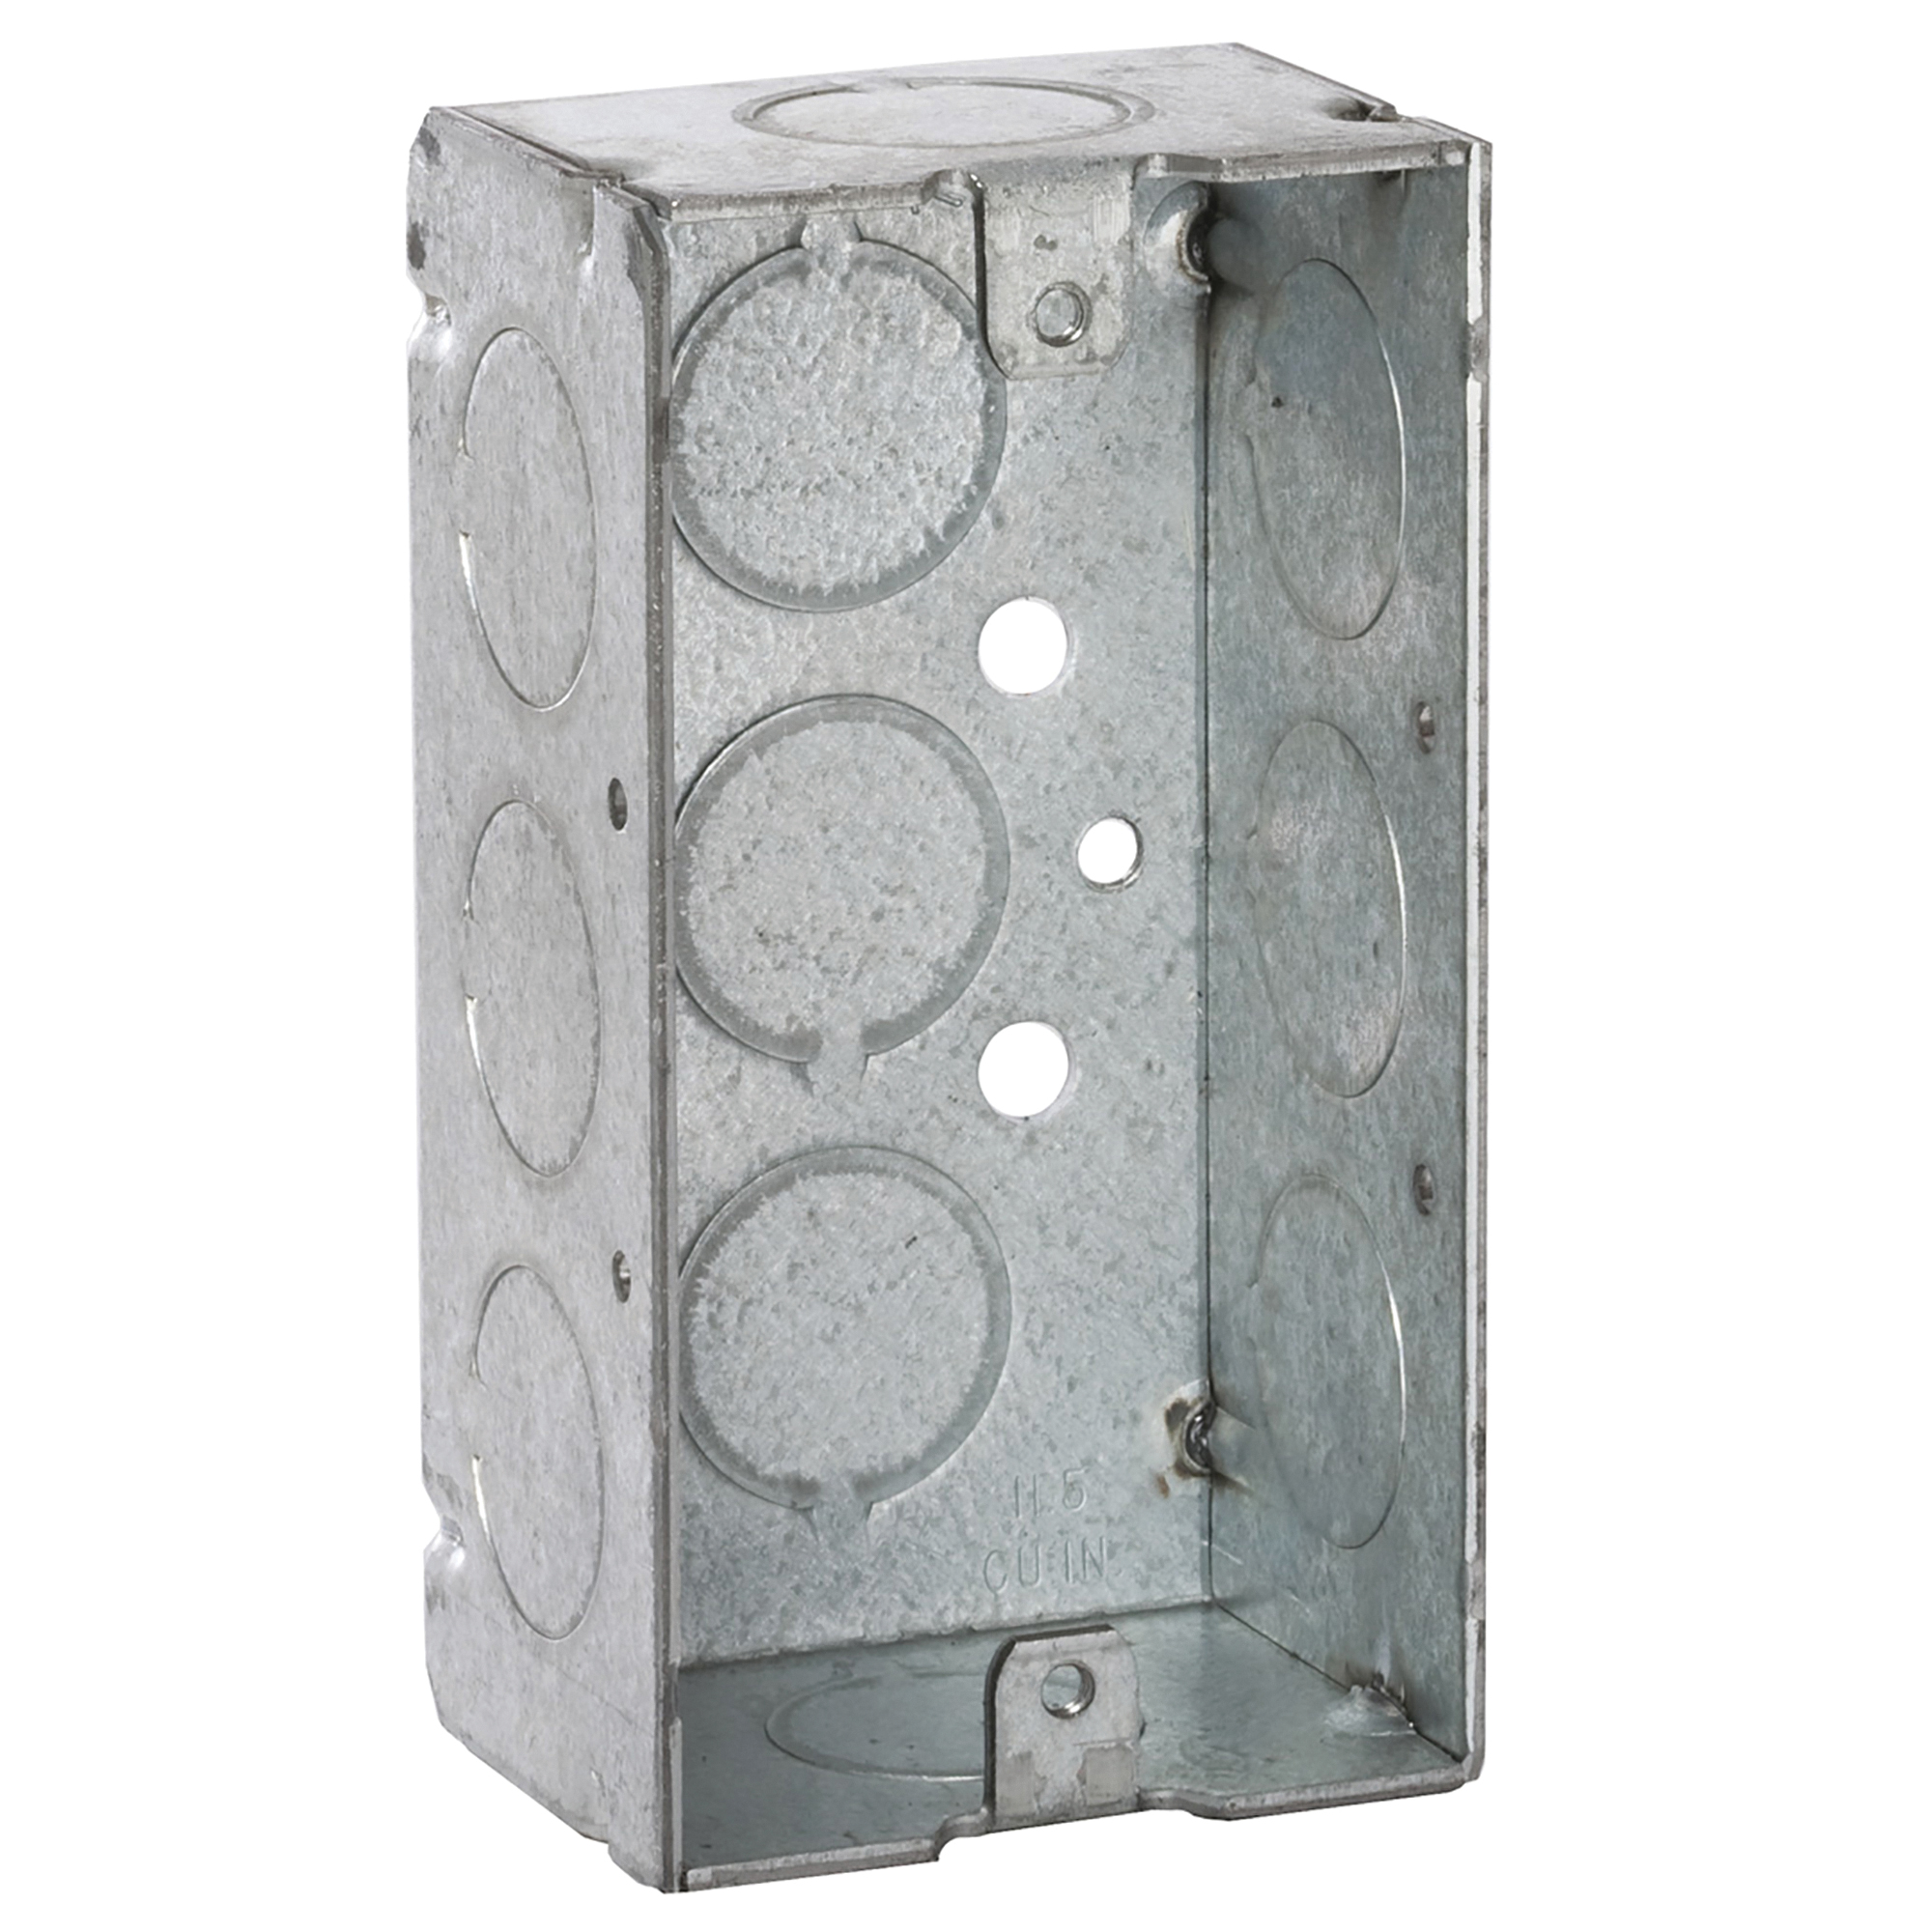 Picture of RACO 8650 Handy Box, 1-Gang, 11-Knockout, 1/2 in Knockout, Steel, Gray